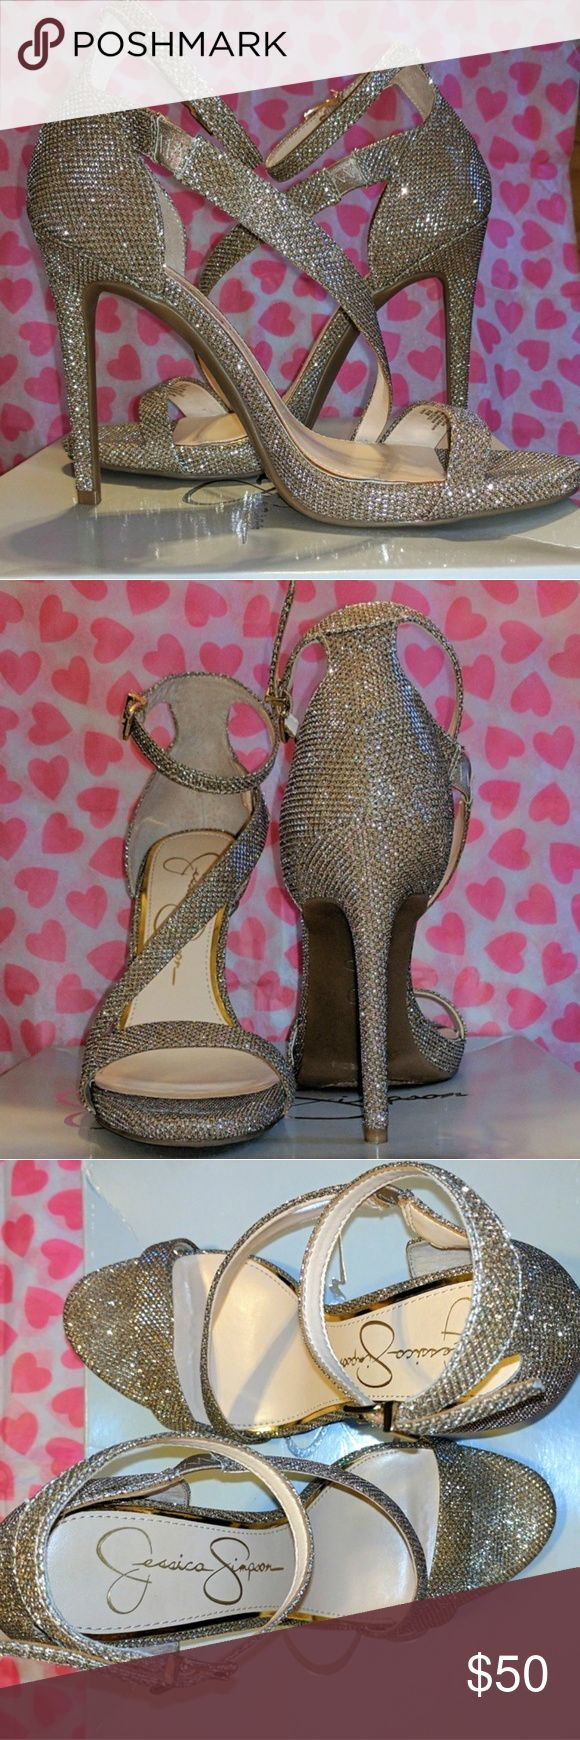 Jessica Simpson Prom Gold Sparkly Heels Never know what type of heels to get for prom or either going out with your girls? Well, these Jessica Simpson heels would be the finishing touch! Jessica Simpson Shoes Heels